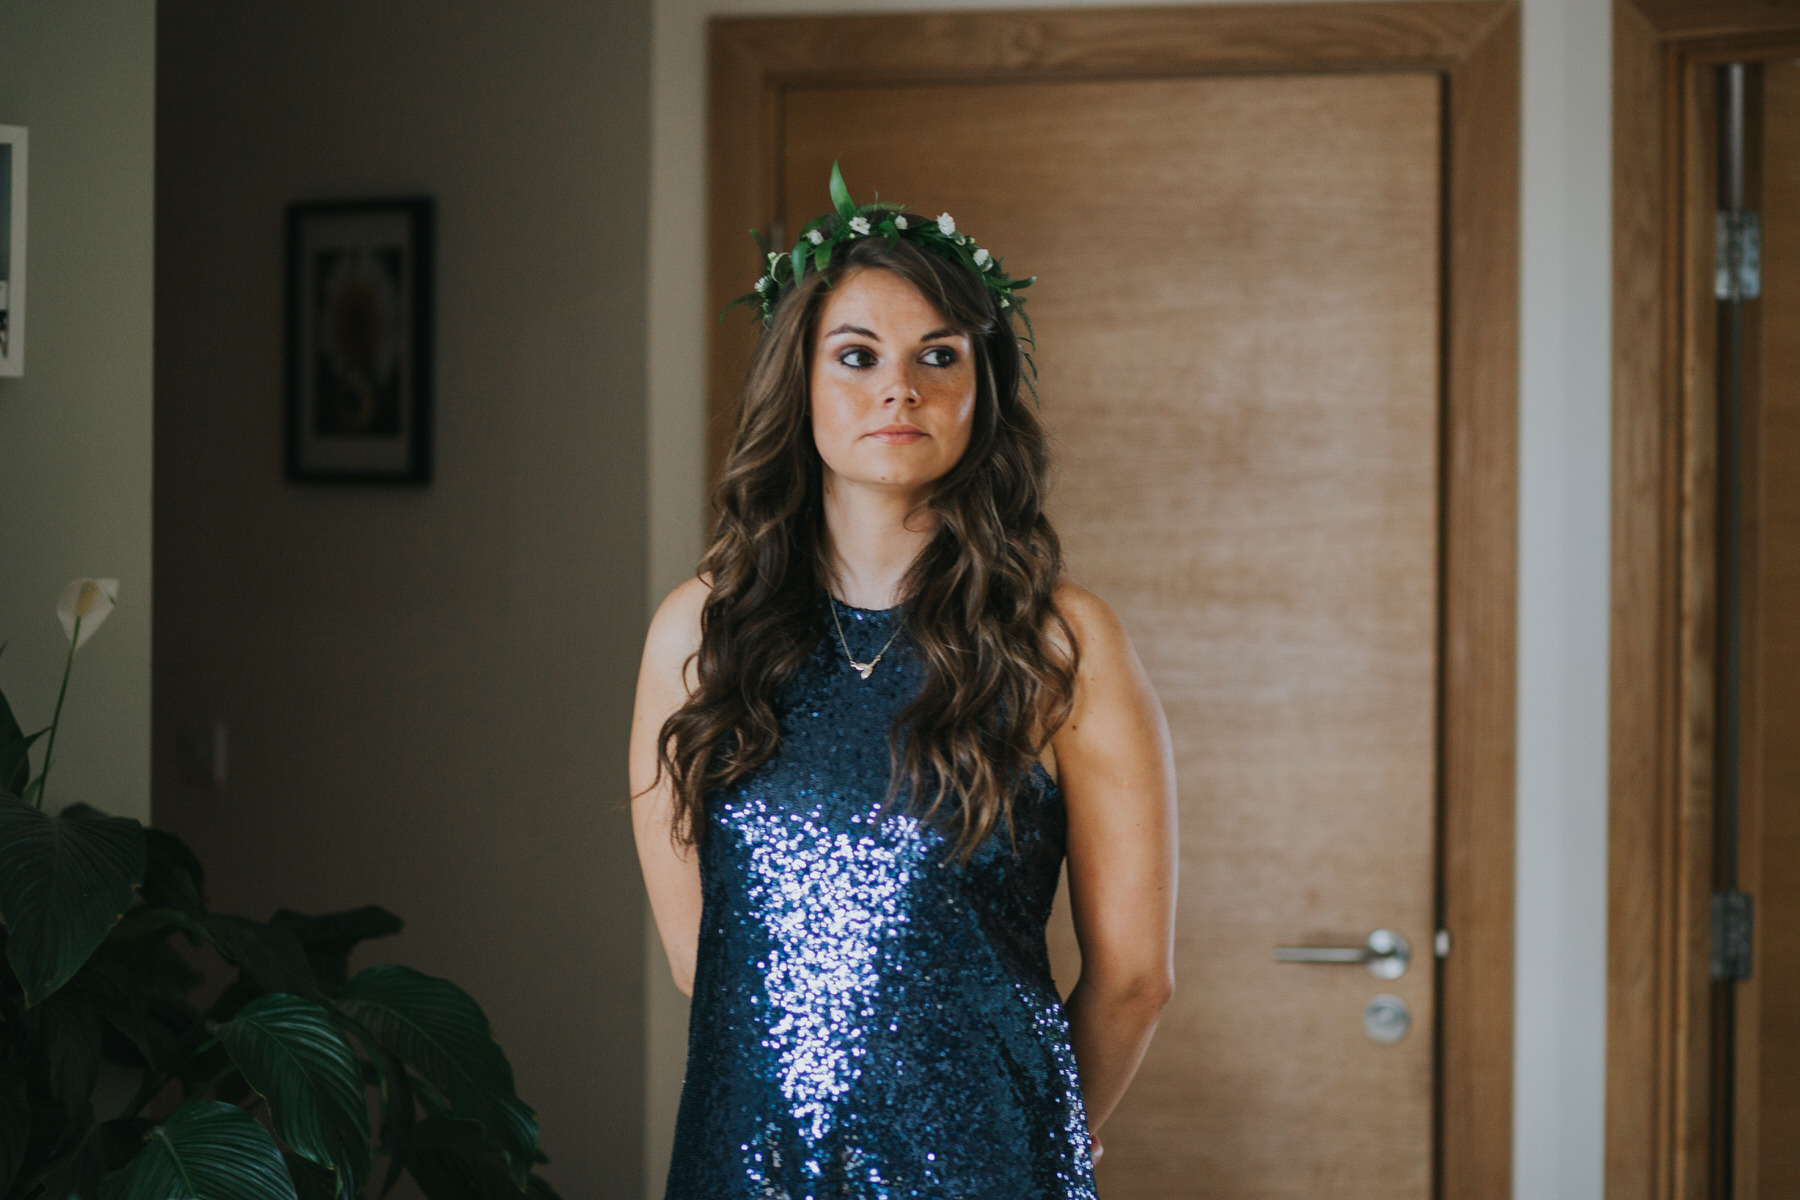 13 bridesmaid wearing navy blue sequin dress quirky fern crown head dress  woodland Wedding.jpg